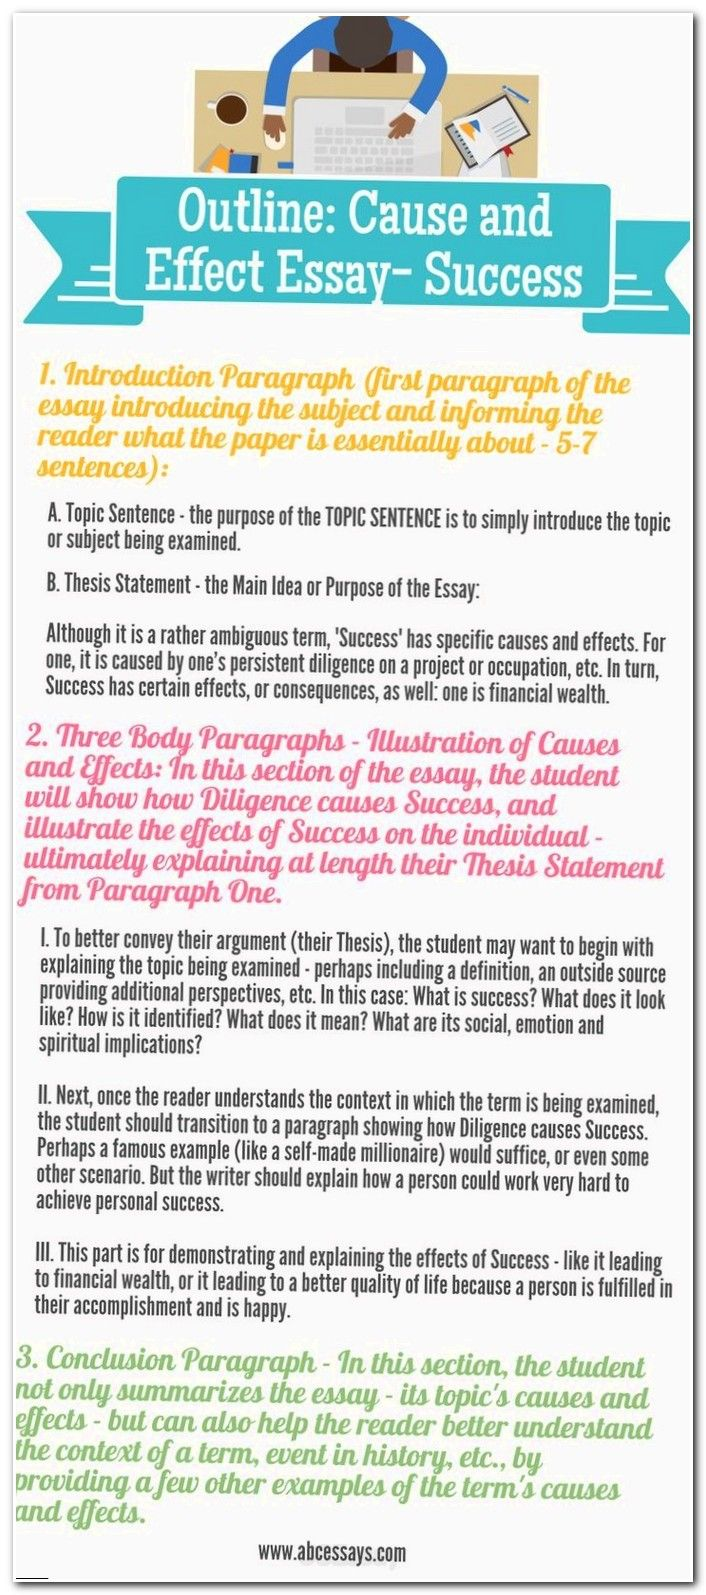 essay essaywriting proposal essay ideas, 5 essay topics